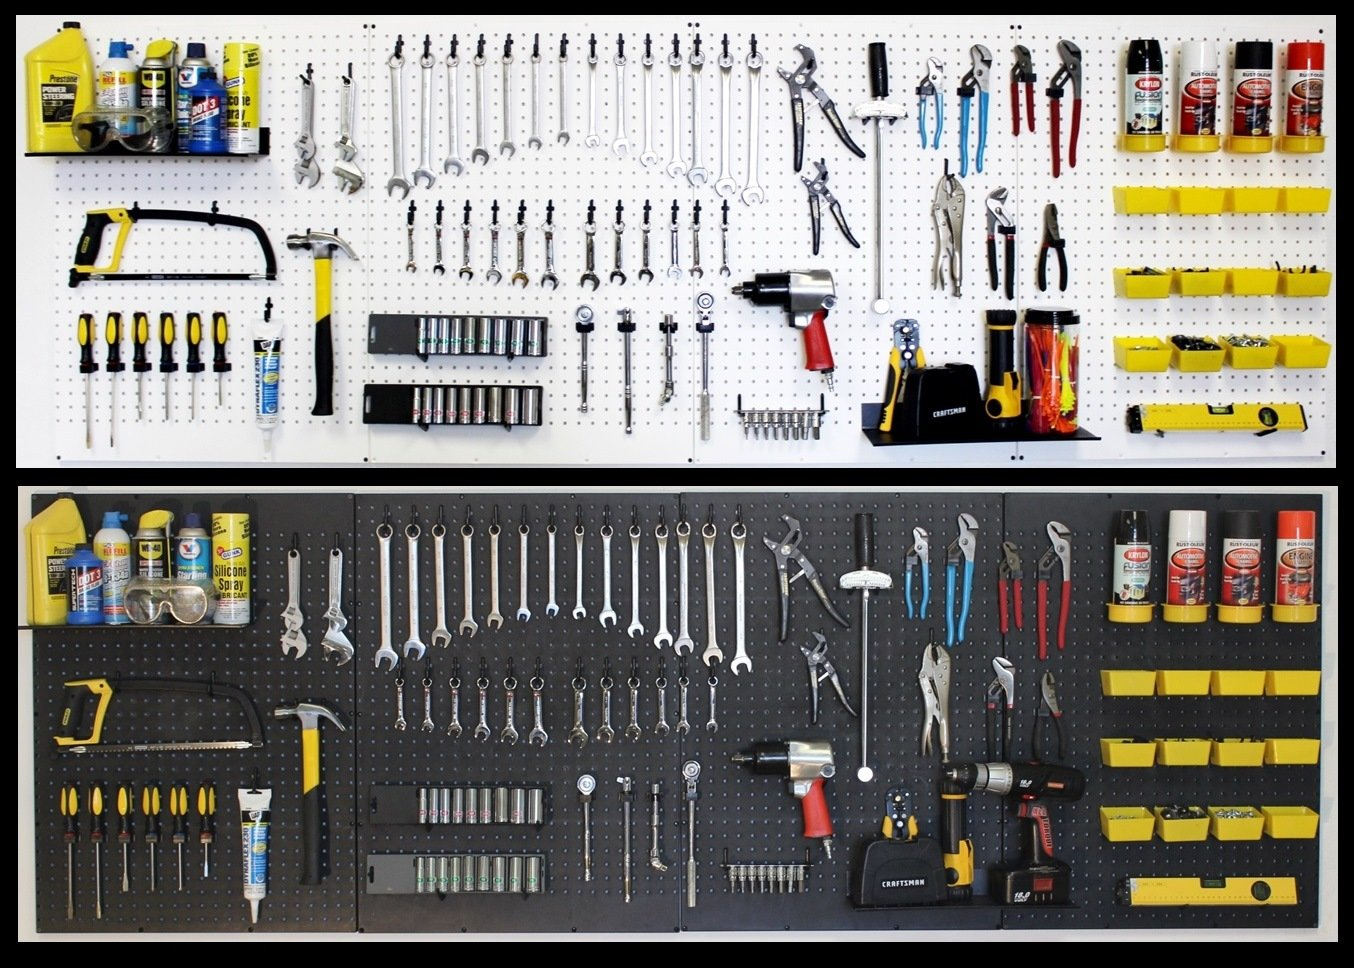 WallPeg pegboard Panels, Shelves, Bins, Locking peg Hooks Garage Storage kit 96 W-B (Black) by WallPeg